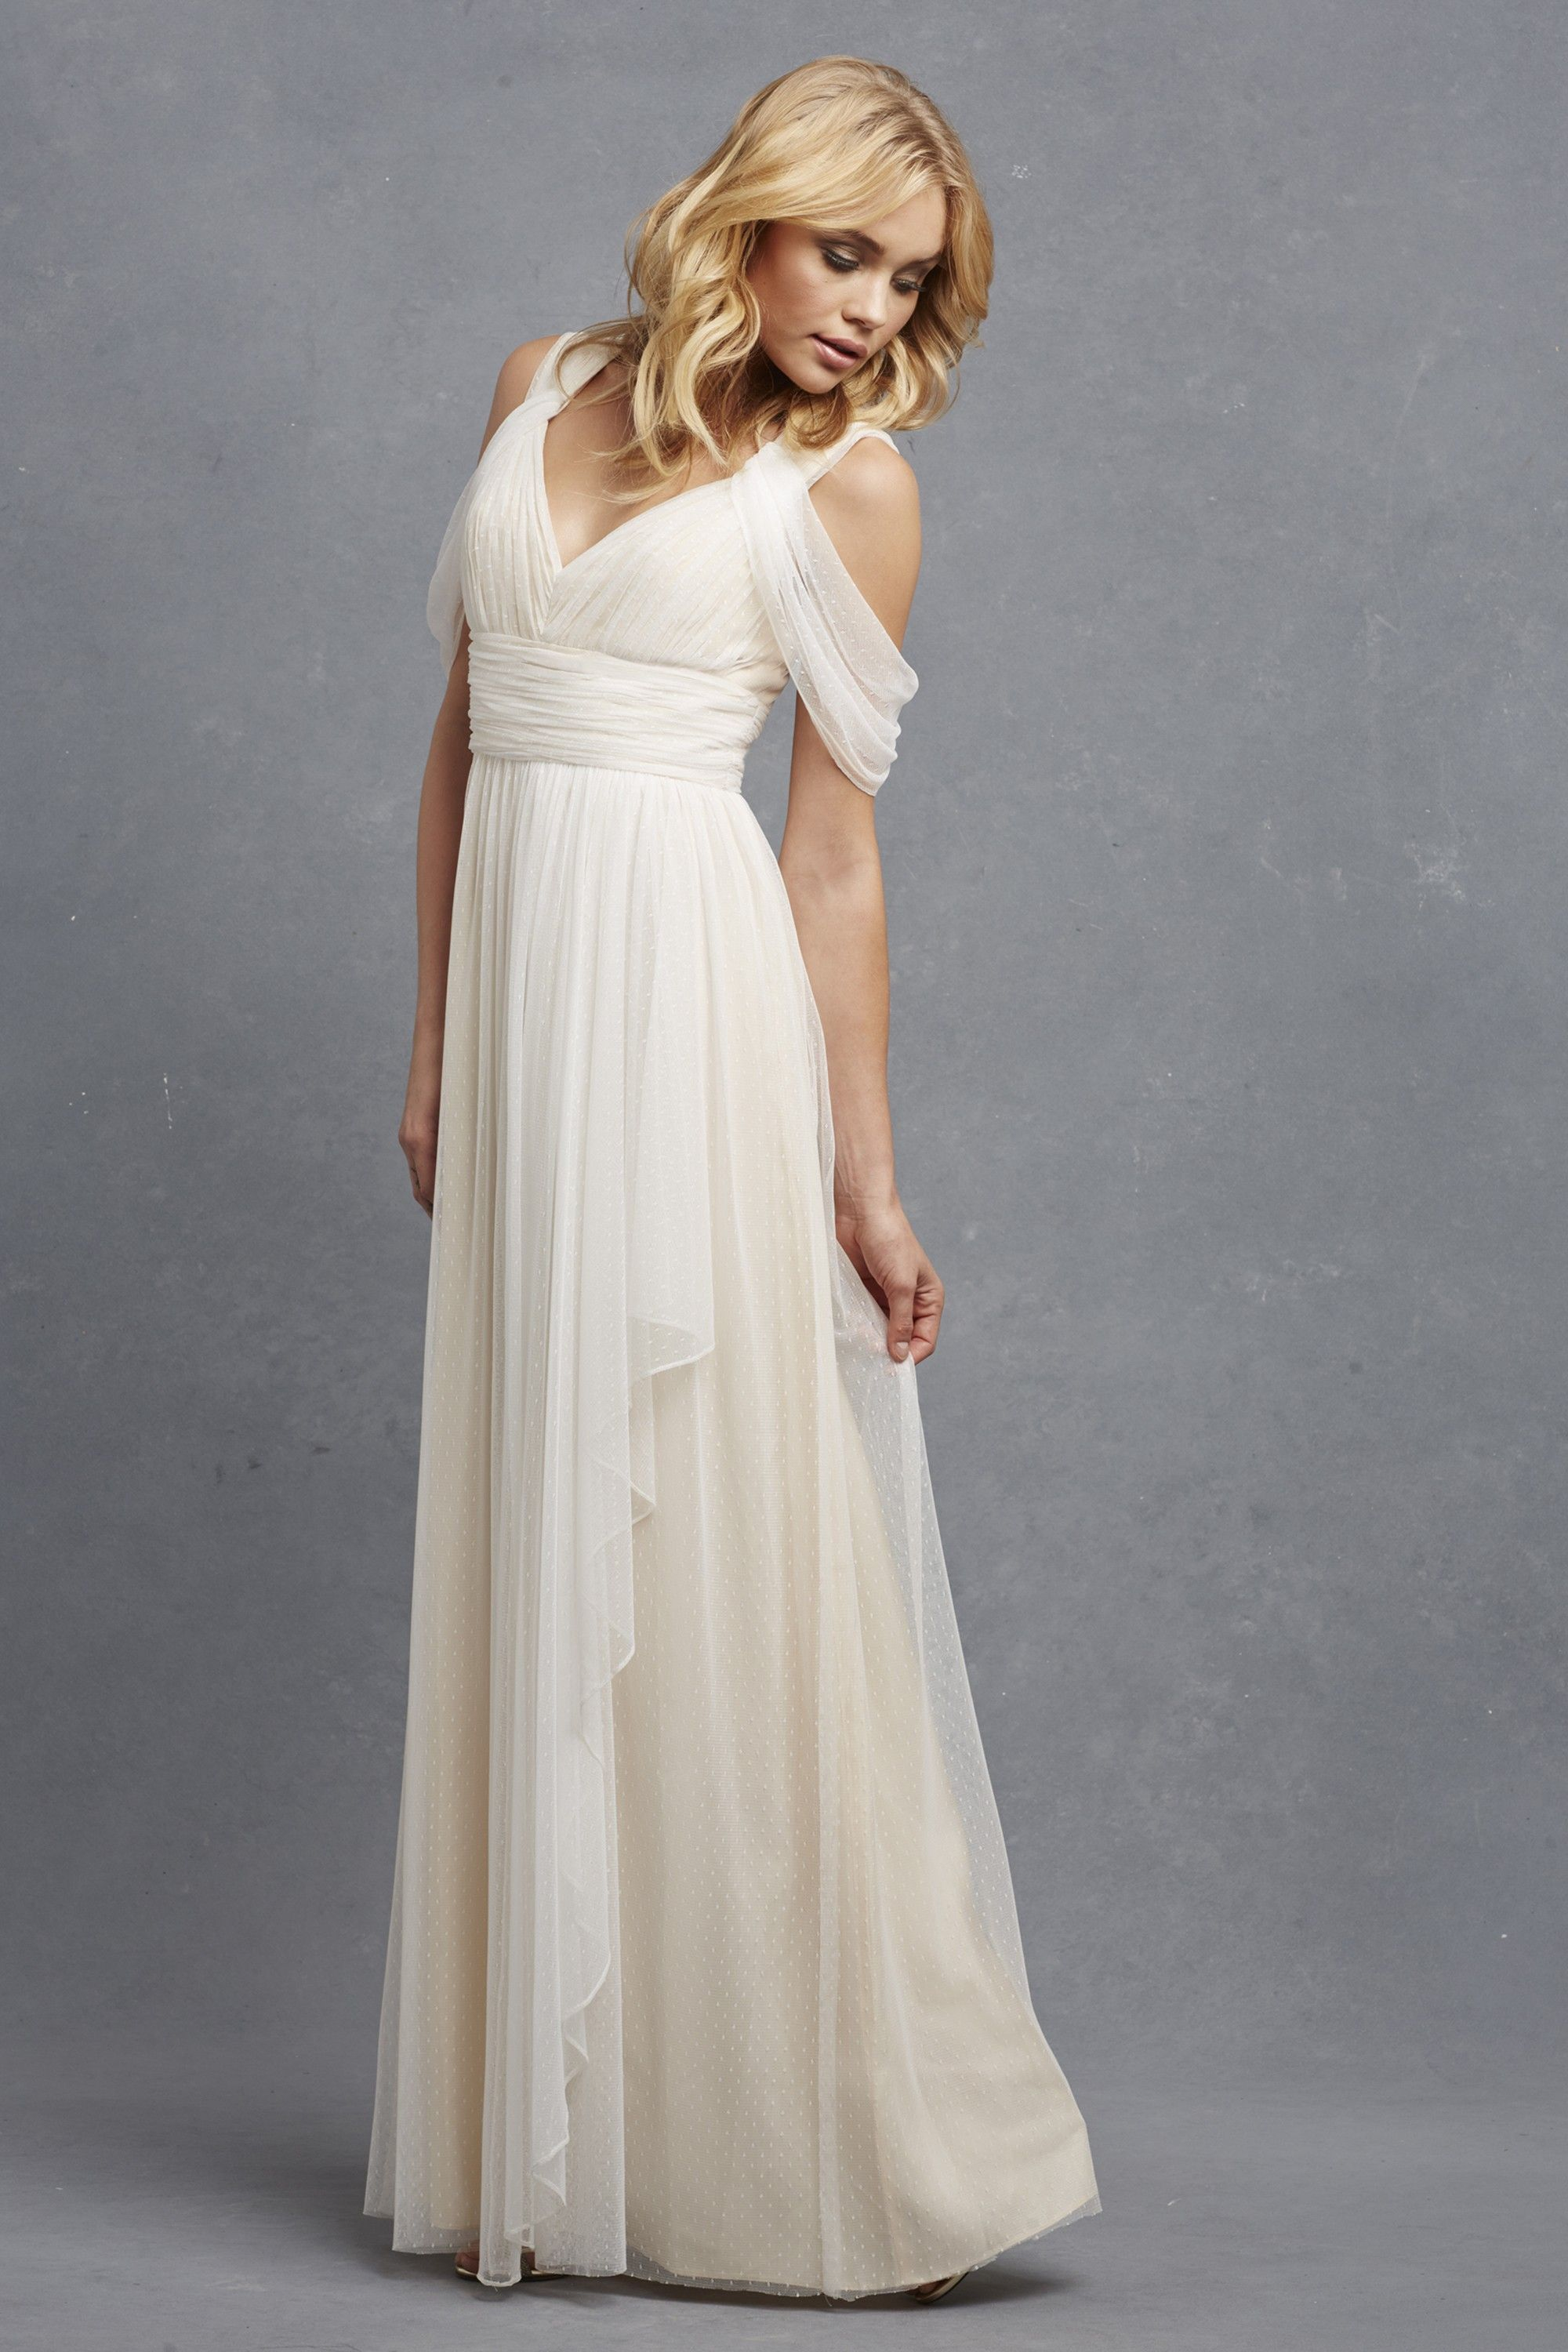 Chic romantic bridesmaid dresses to mix and match white lilies chic romantic bridesmaid dresses to mix and match ombrellifo Image collections